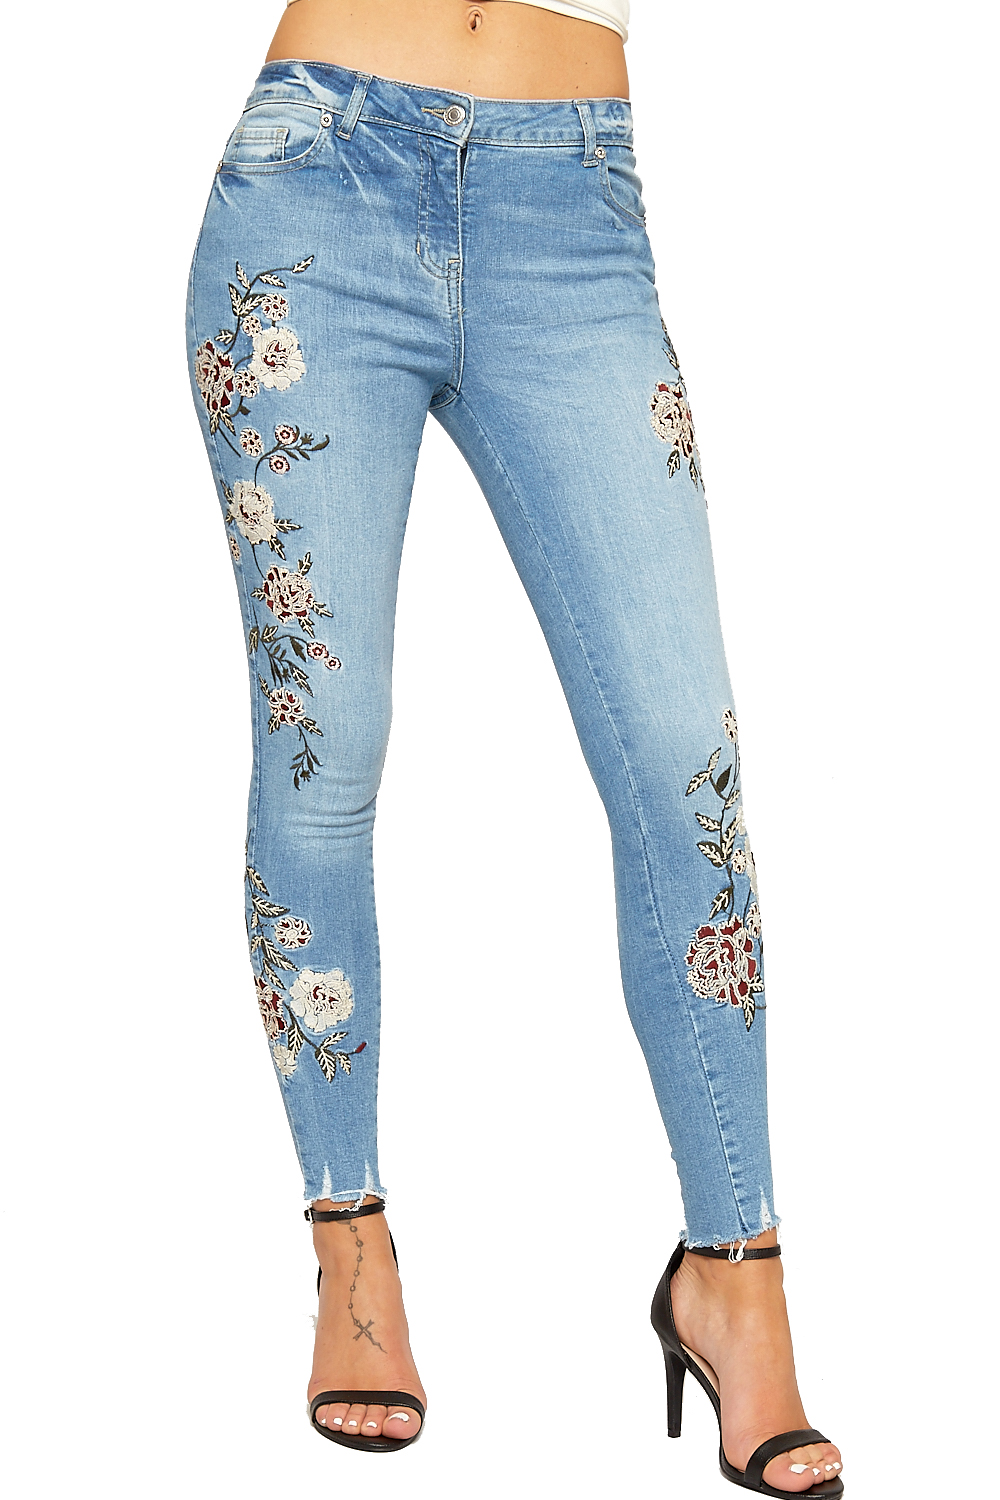 Womens Denim Skinny Leg Ankle Jeans Ladies Floral Embroidered Frayed Button New